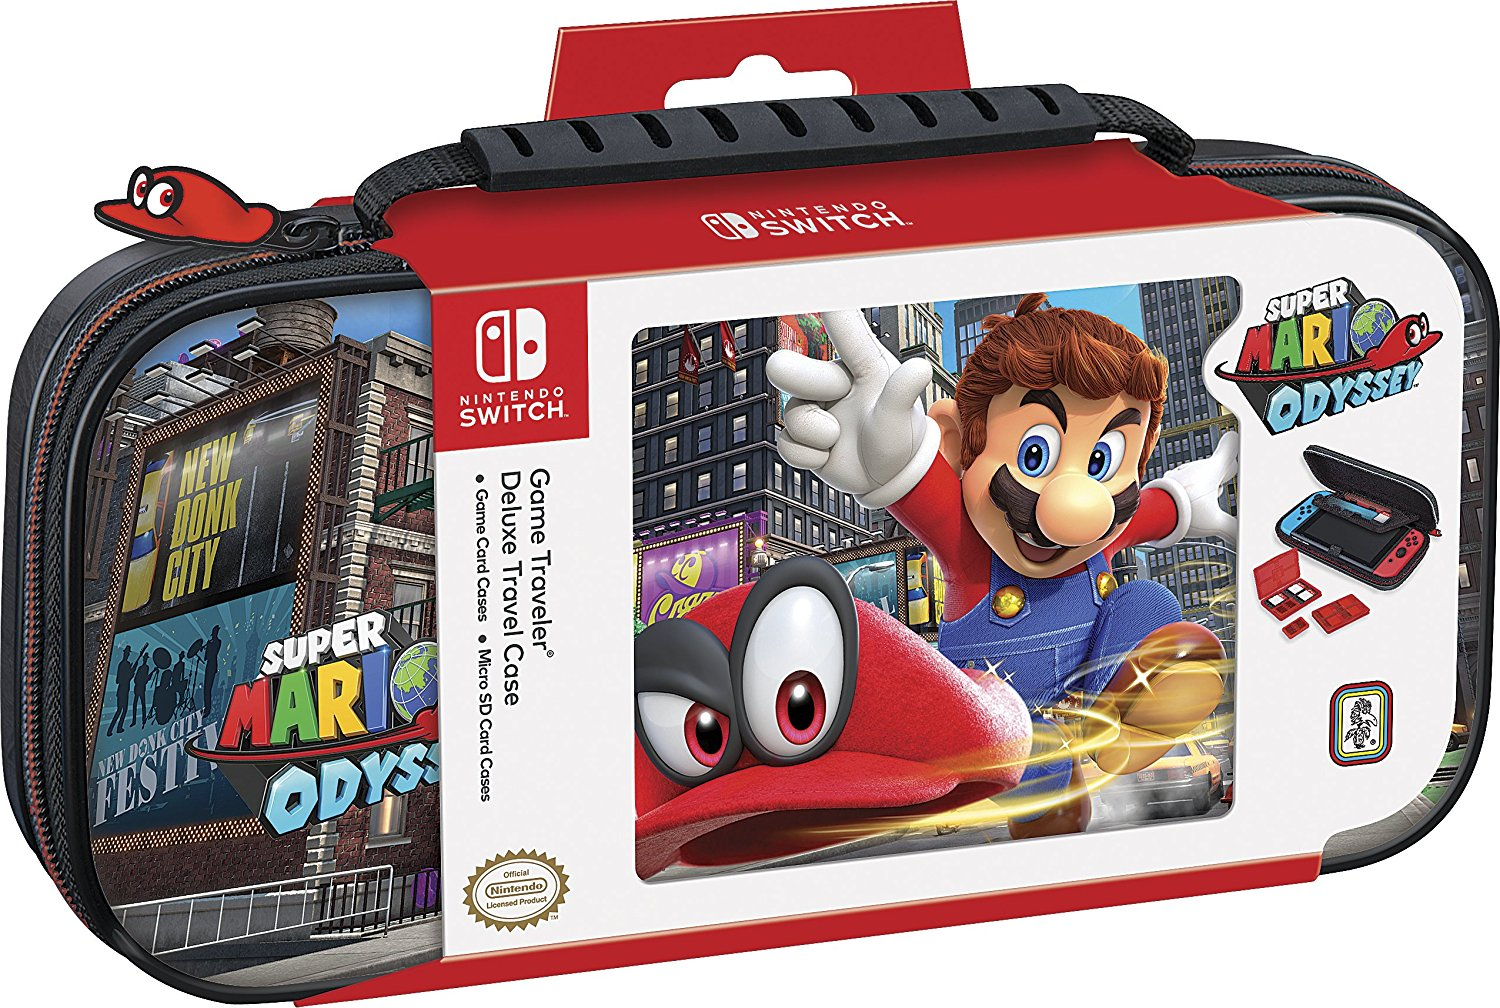 Super Mario Odyssey Deluxe Nintendo Switch Travel Case